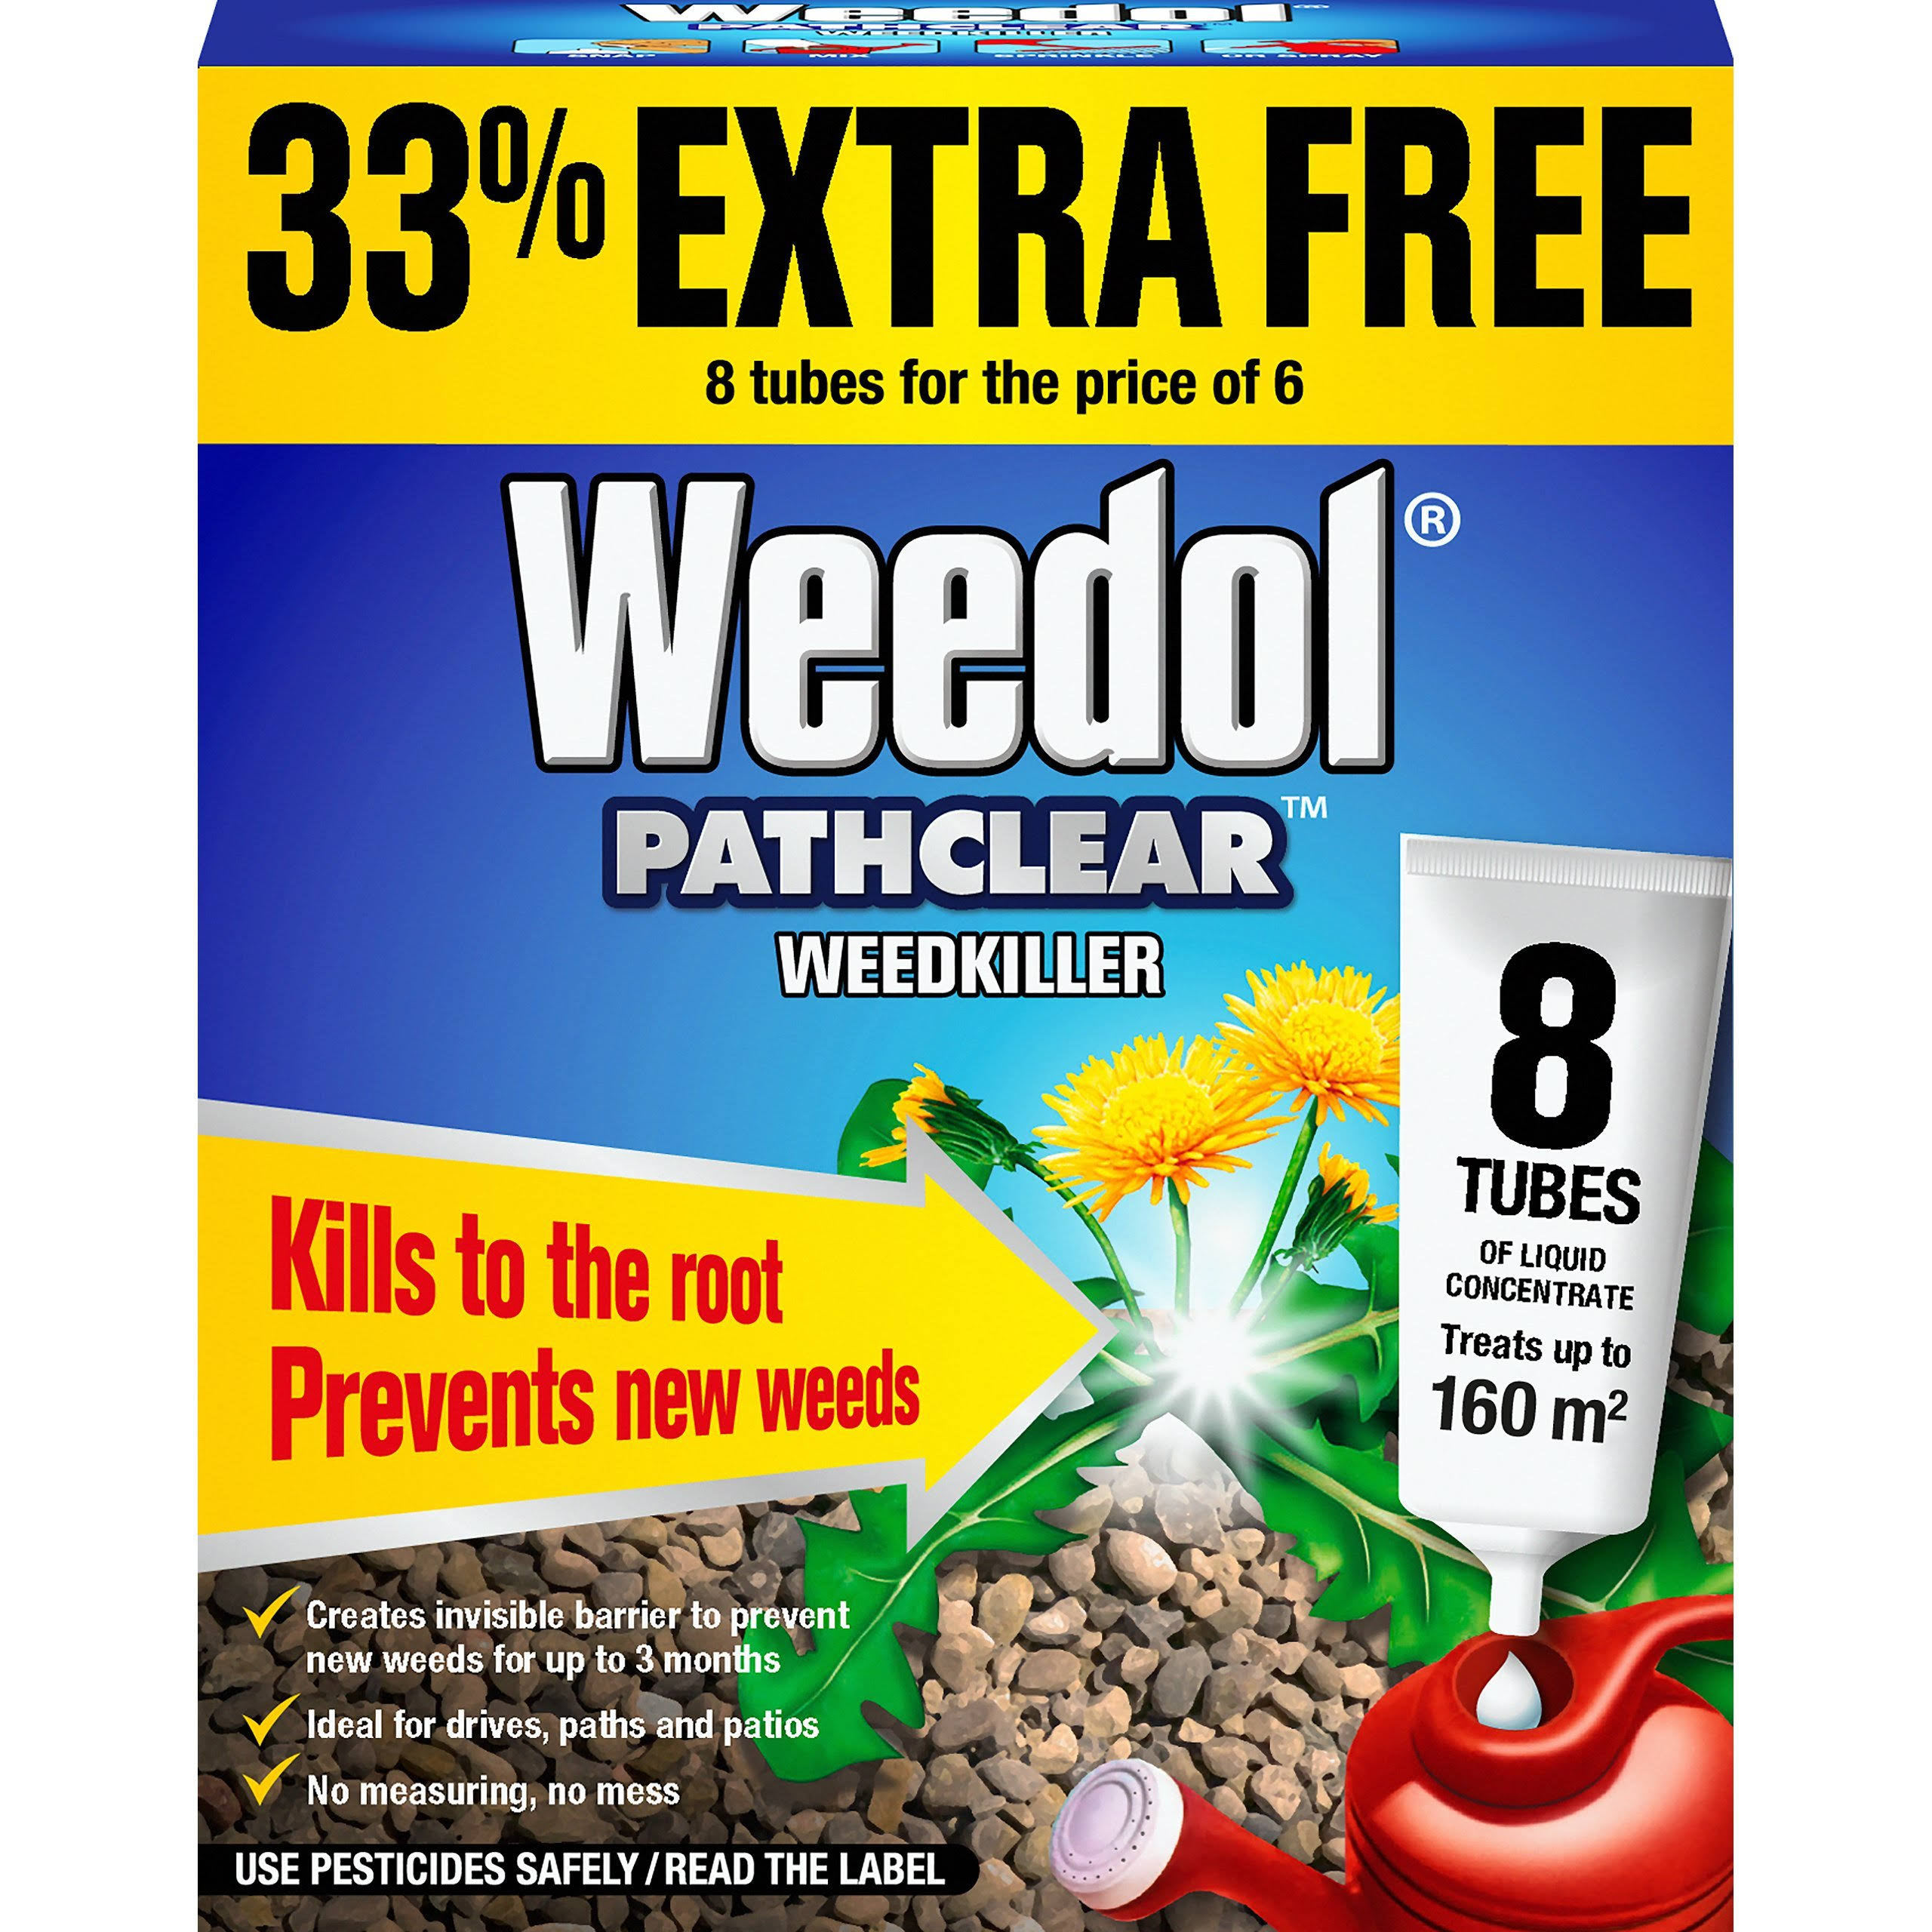 Weedol Pathclear Weedkiller - 8 Tubes, 18ml